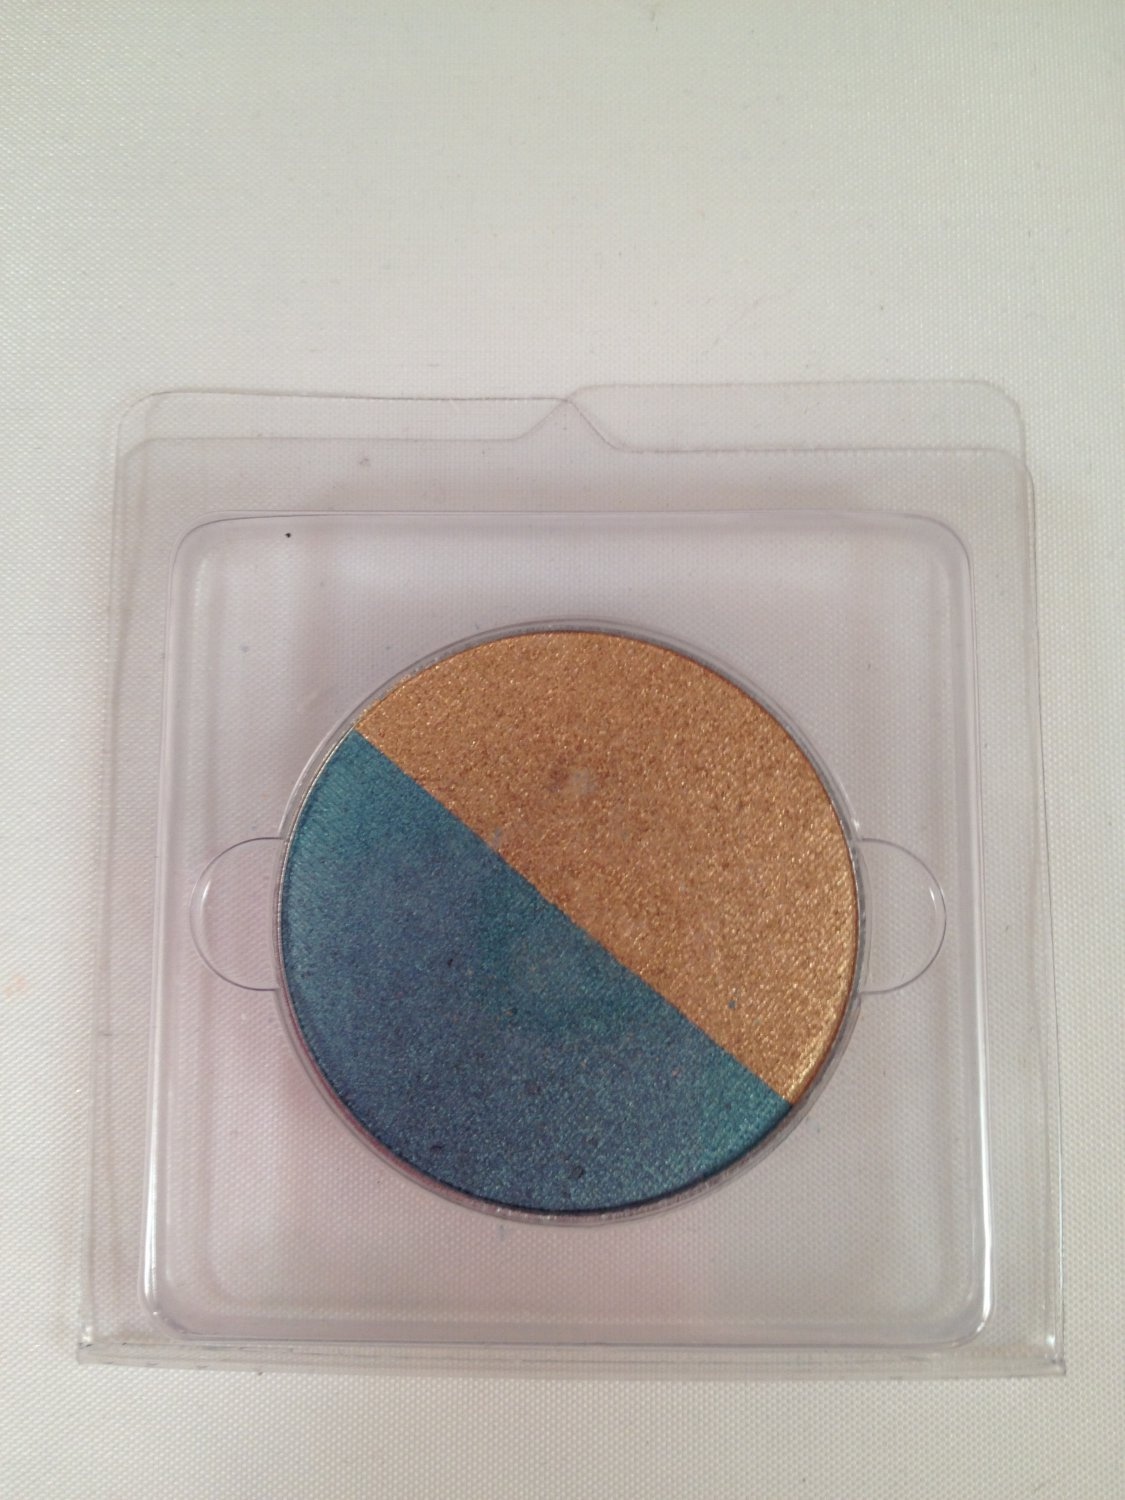 Ulta Mineral Eyeshadow Duo refill pan Sunlit Waves eye shadow